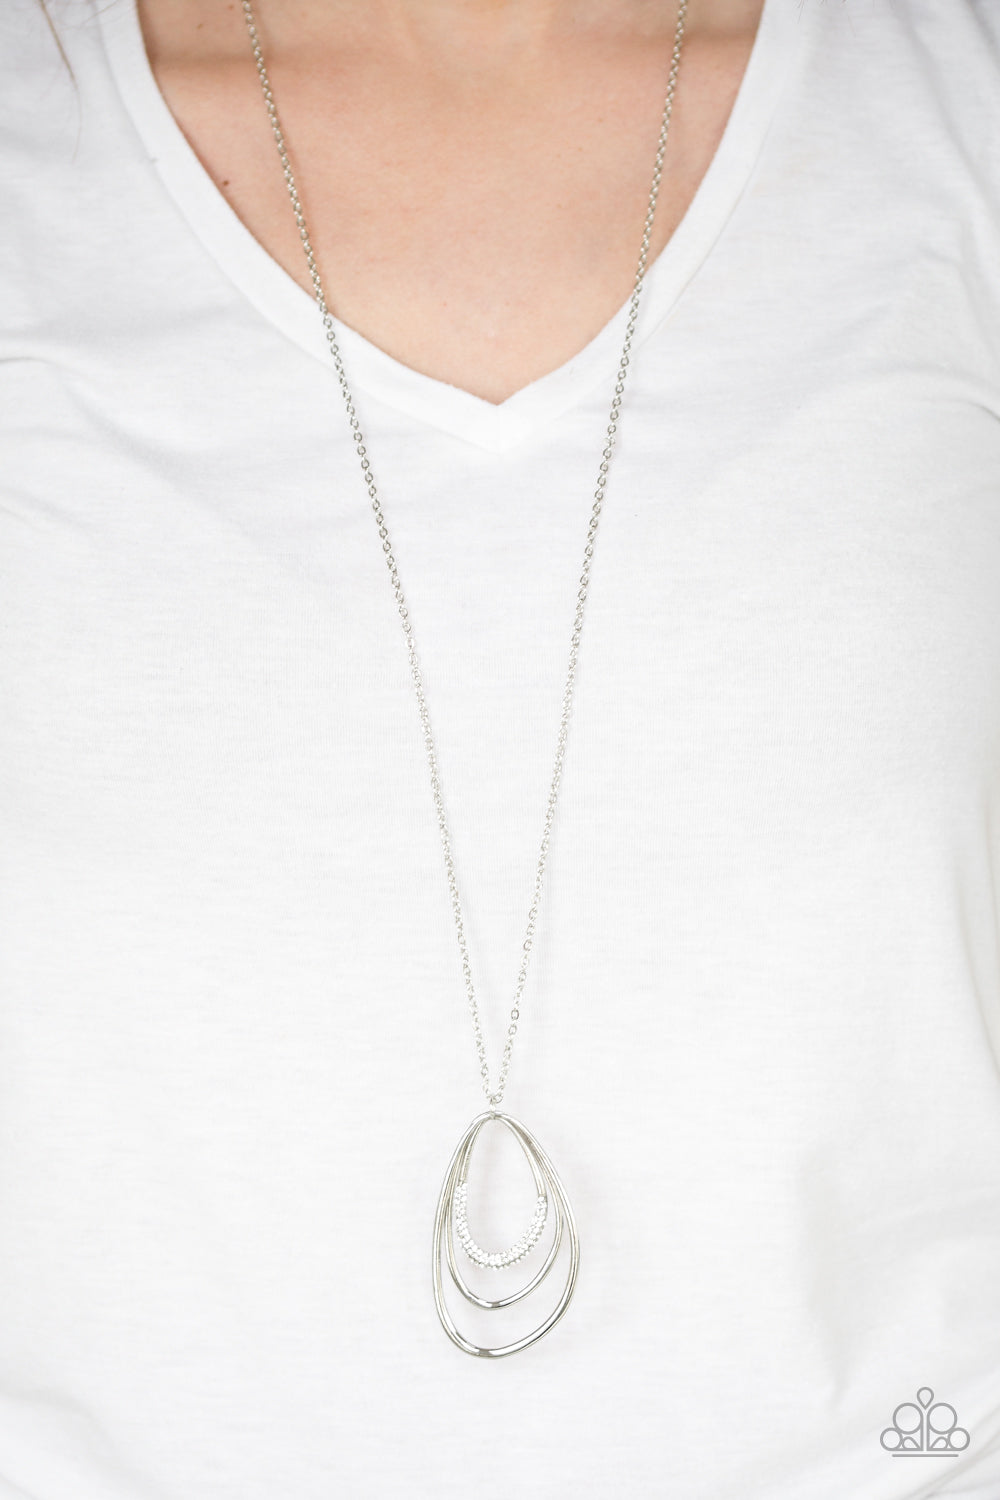 Already Aglow - white - Paparazzi necklace